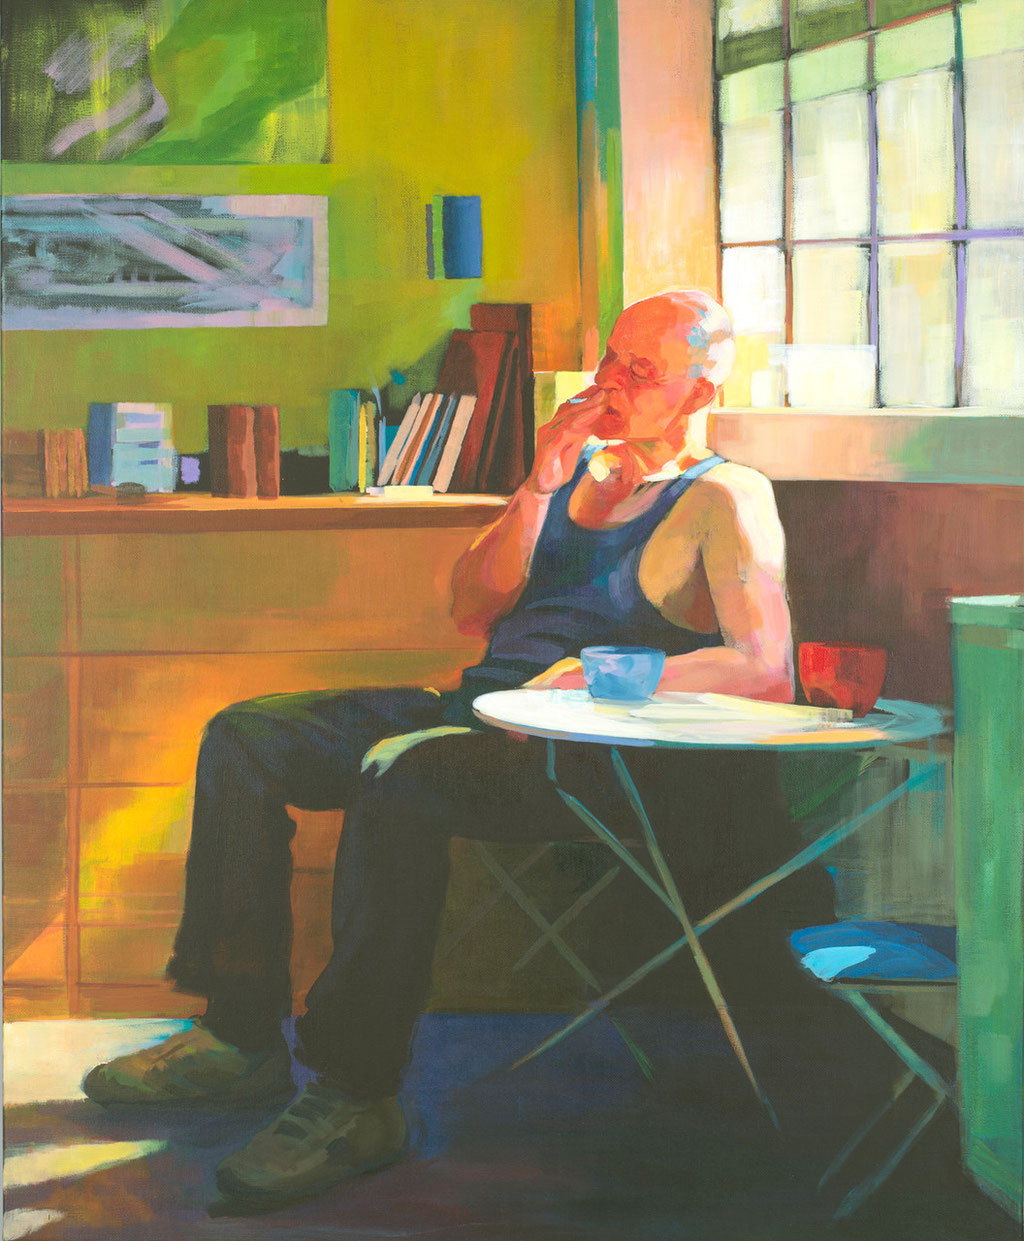 The painter's pause. Acrylic on canvas. 100 x 81 cm